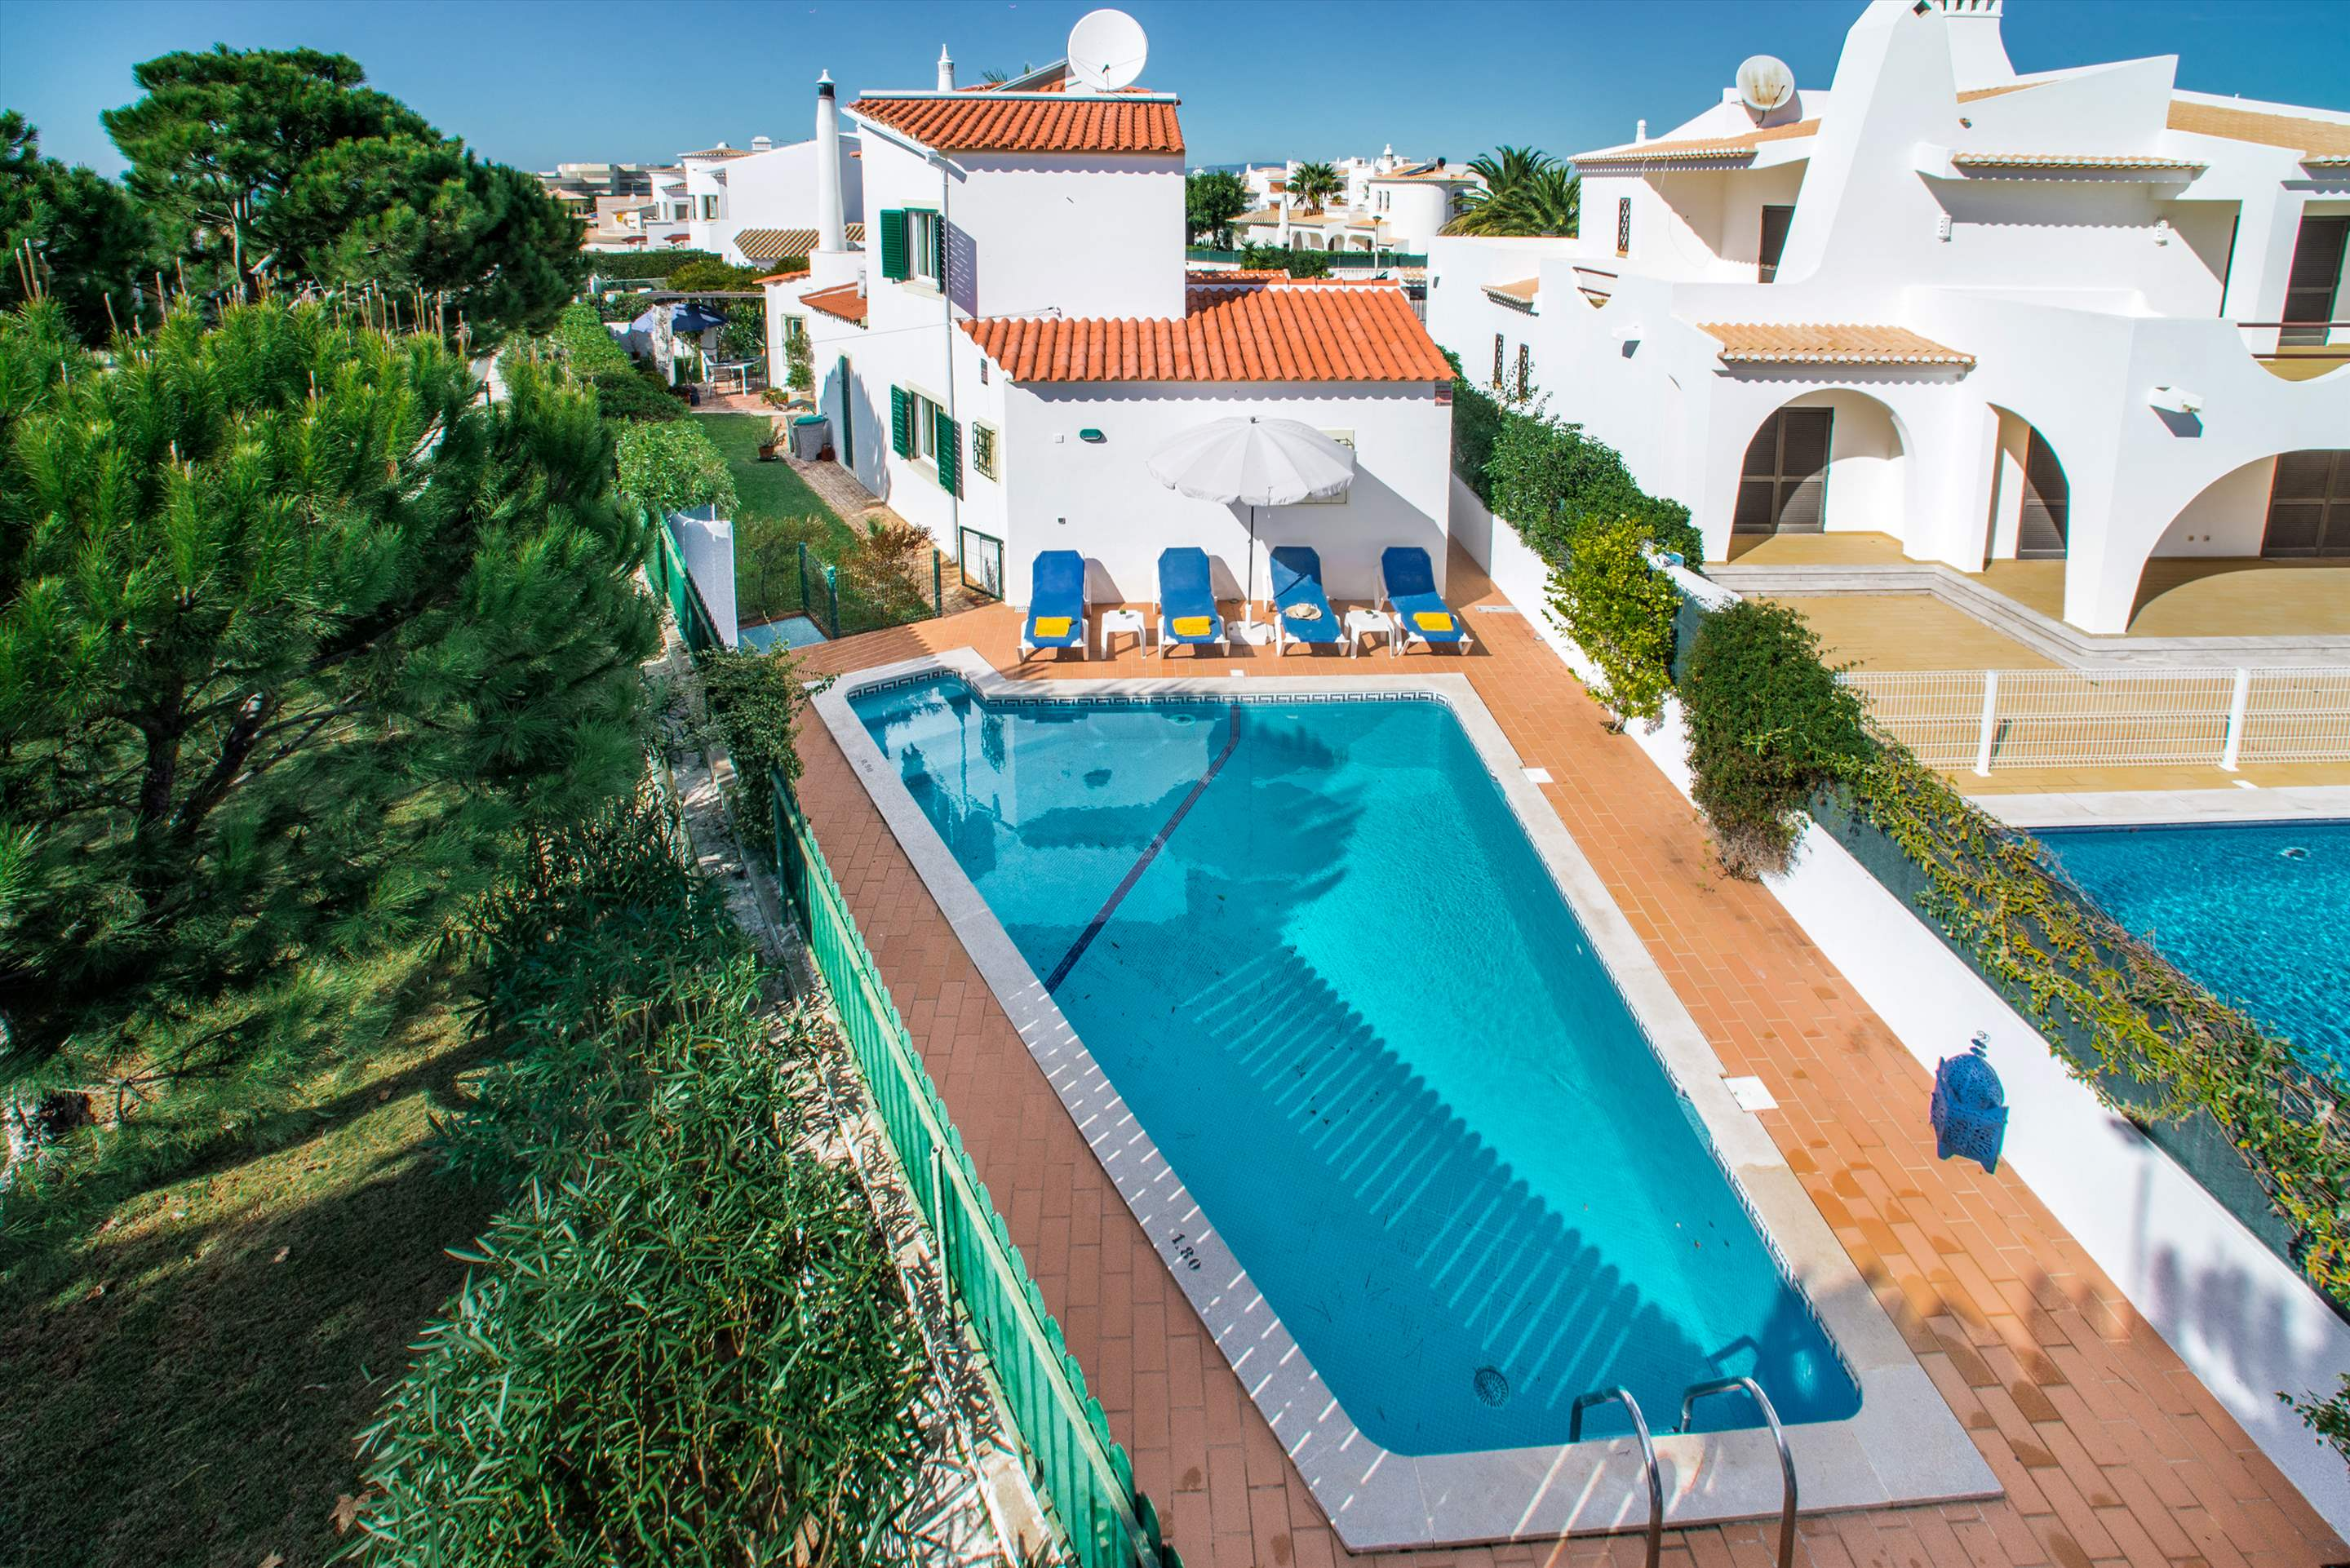 Julieta do Mar, Up to 6 Persons, 3 bedroom villa in Gale, Vale da Parra and Guia, Algarve Photo #12